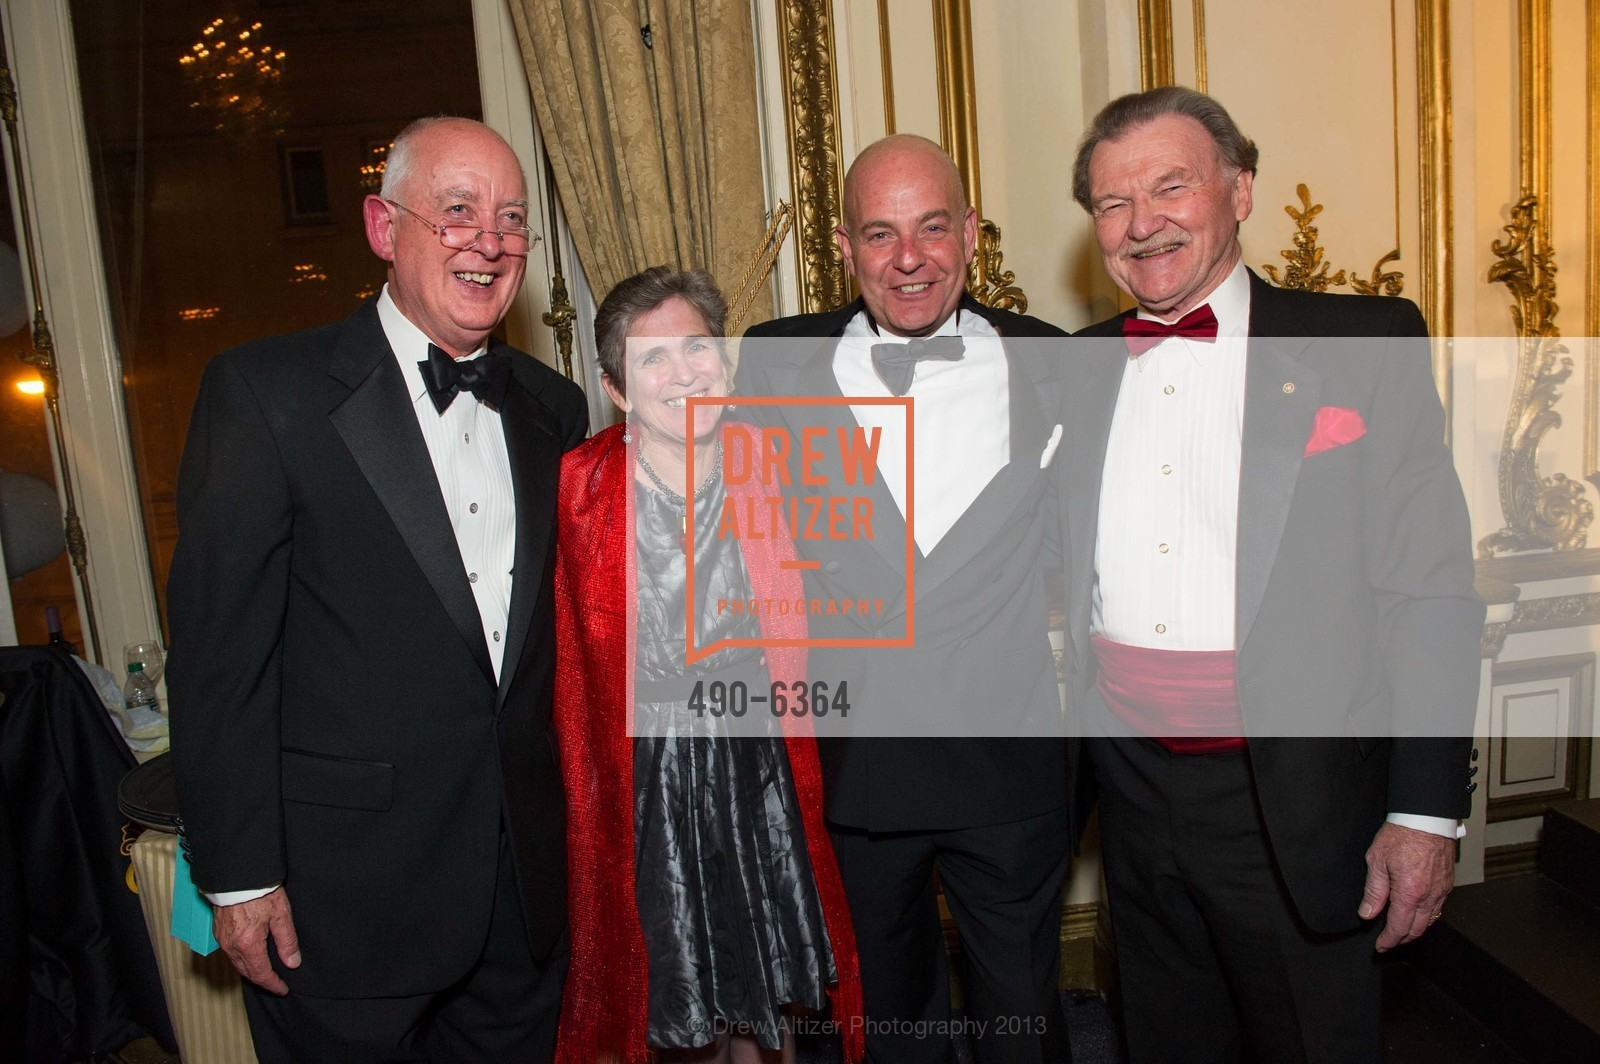 David Malone, Joan Watson, Kevin Causey, Hugh Vincent, 25th Anniversary Holiday HOB NOB ON THE HILL, US, December 6th, 2013,Drew Altizer, Drew Altizer Photography, full-service agency, private events, San Francisco photographer, photographer california